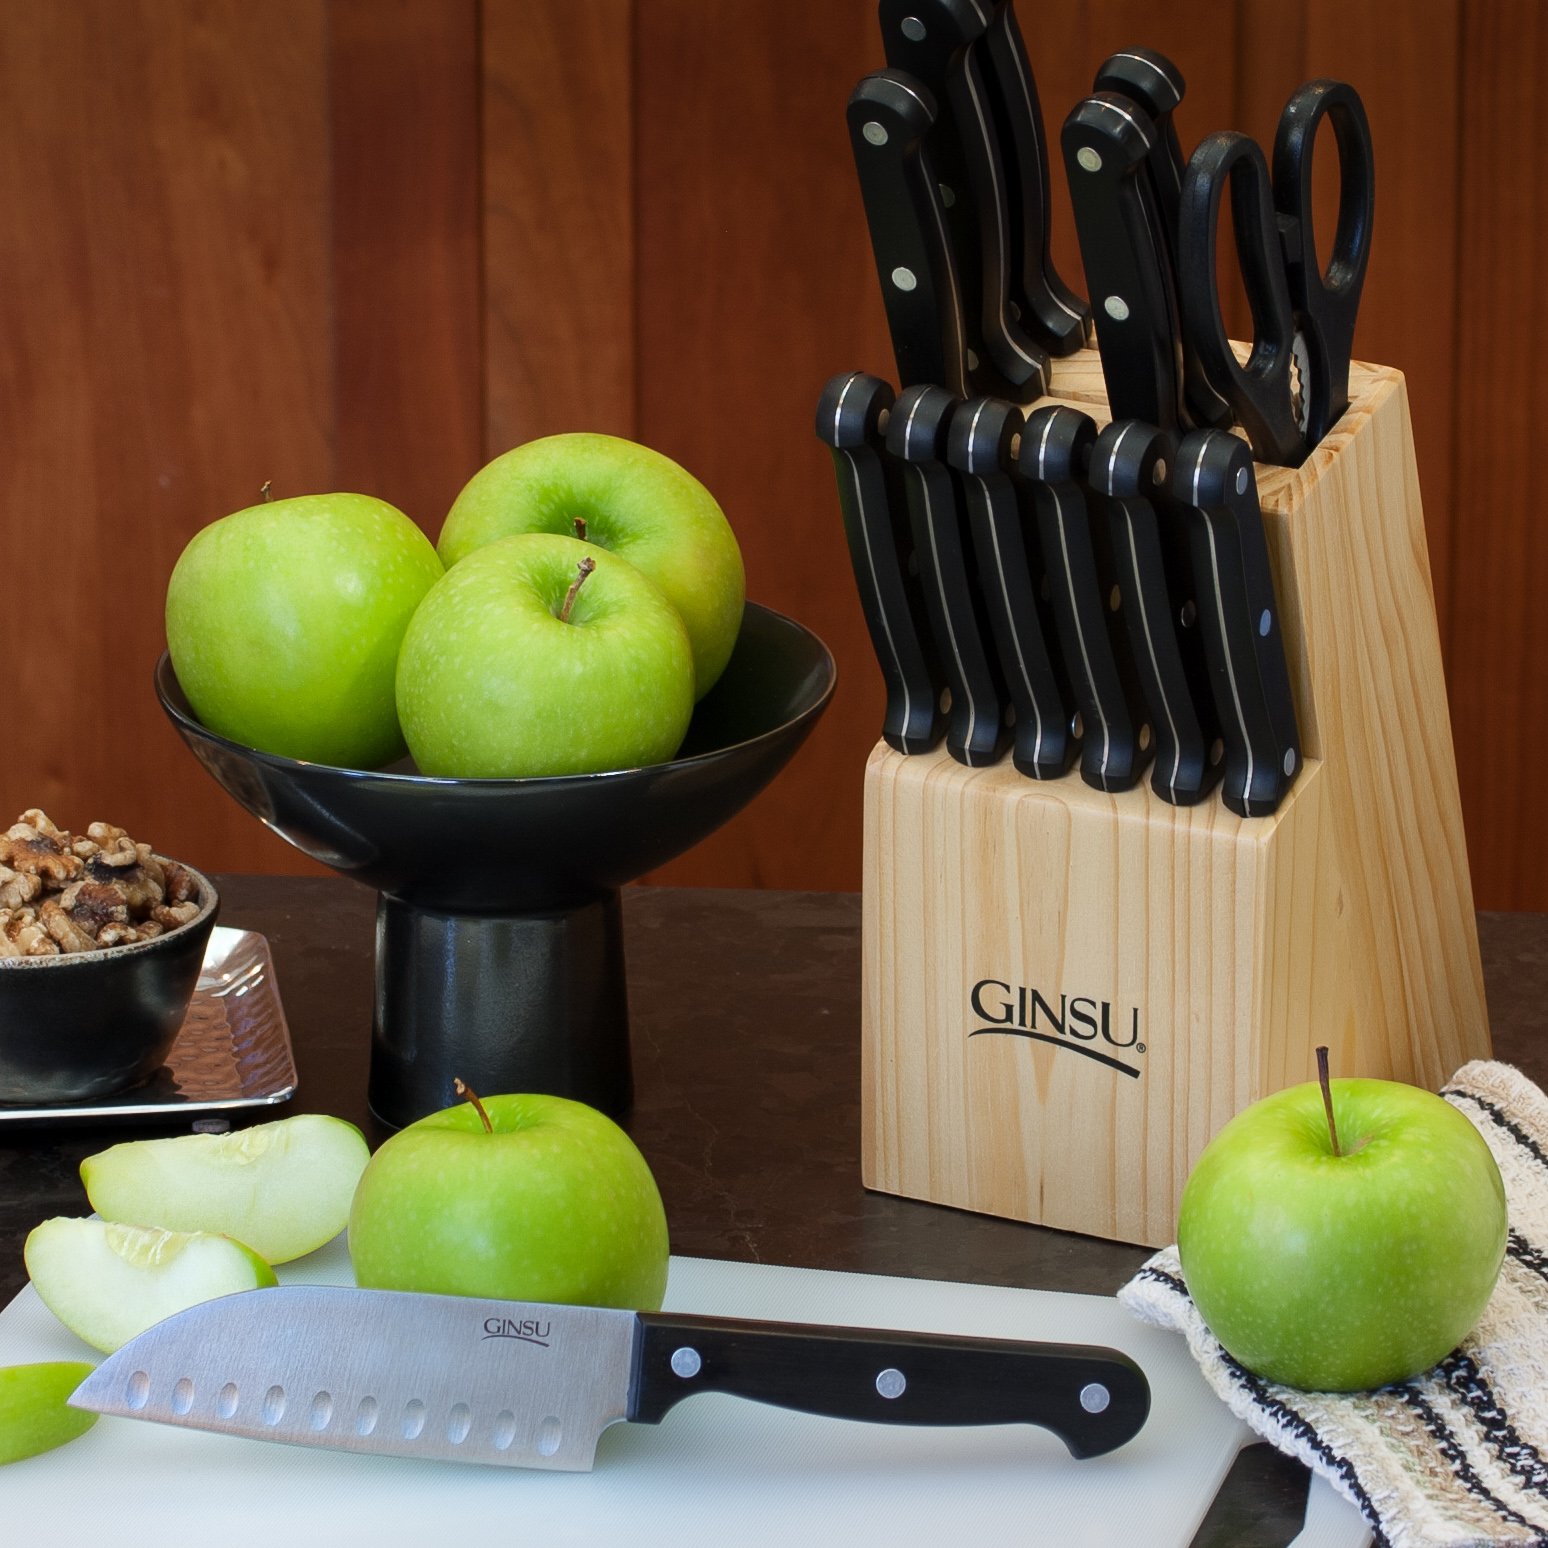 Ginsu Essential Series 14-Piece Stainless Steel Serrated Knife Set – Cutlery Set with Black Kitchen Knives in a Natural Block, GES-KB-DS-014-5